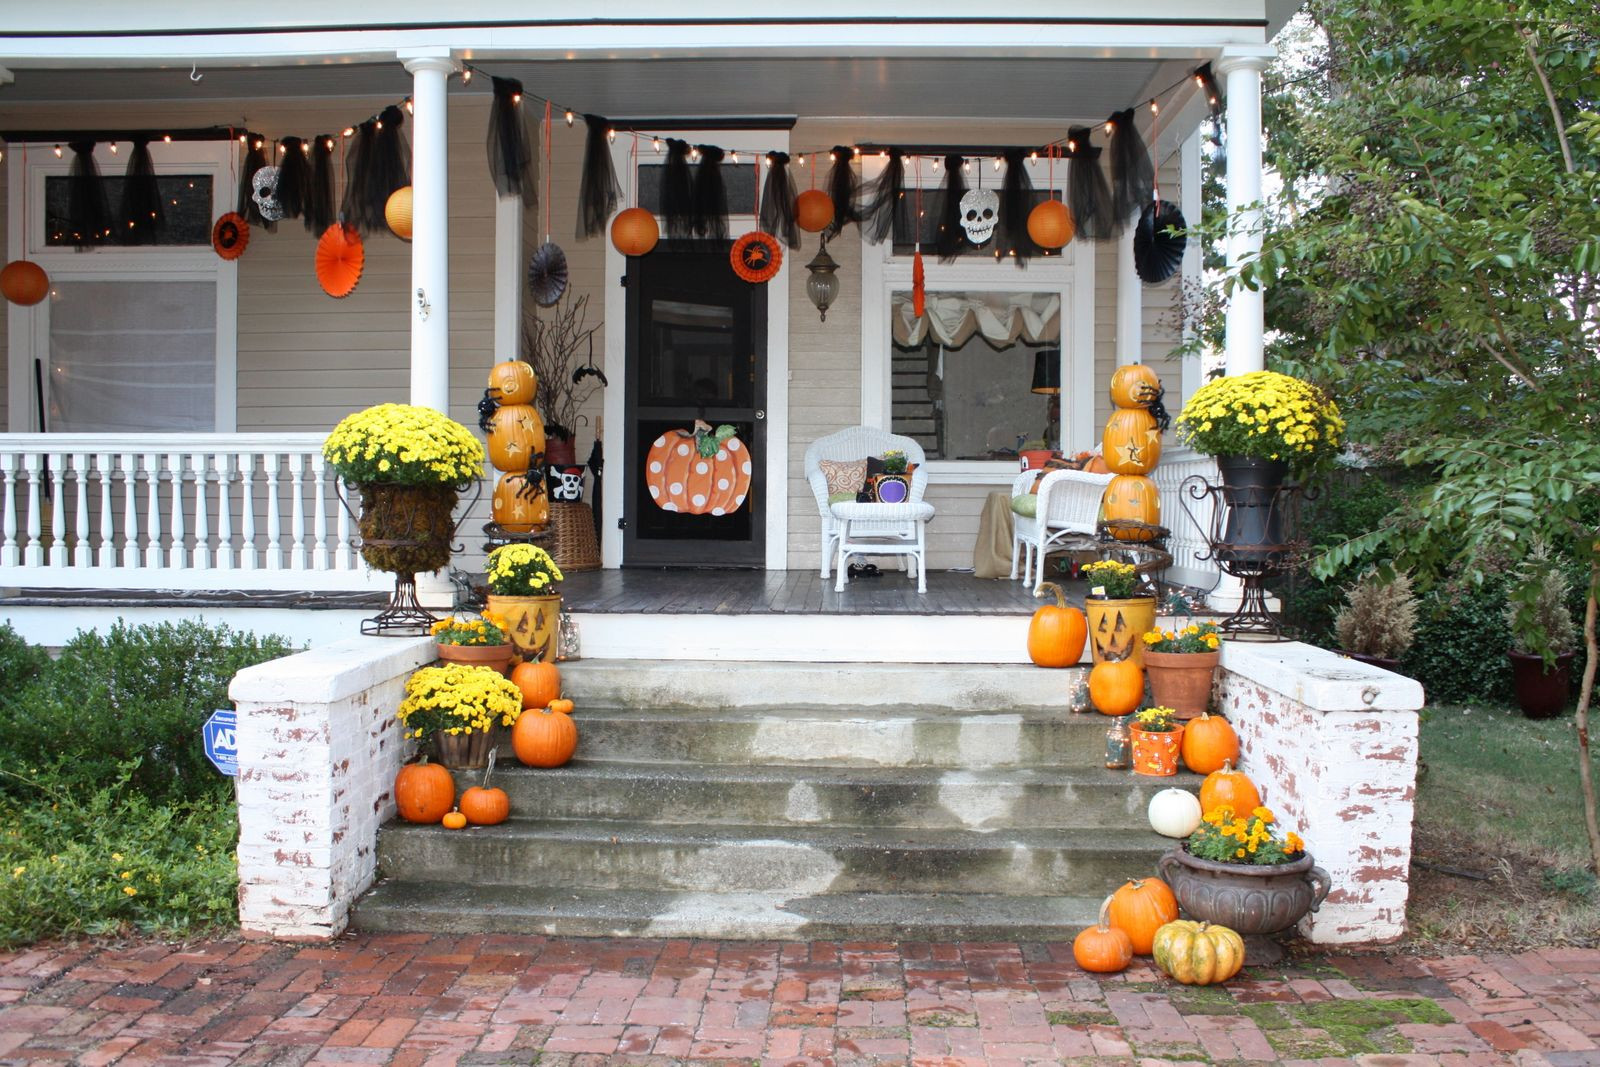 Porch Decorating For Halloween  Our Southern Nest Whimsical Halloween Decorations